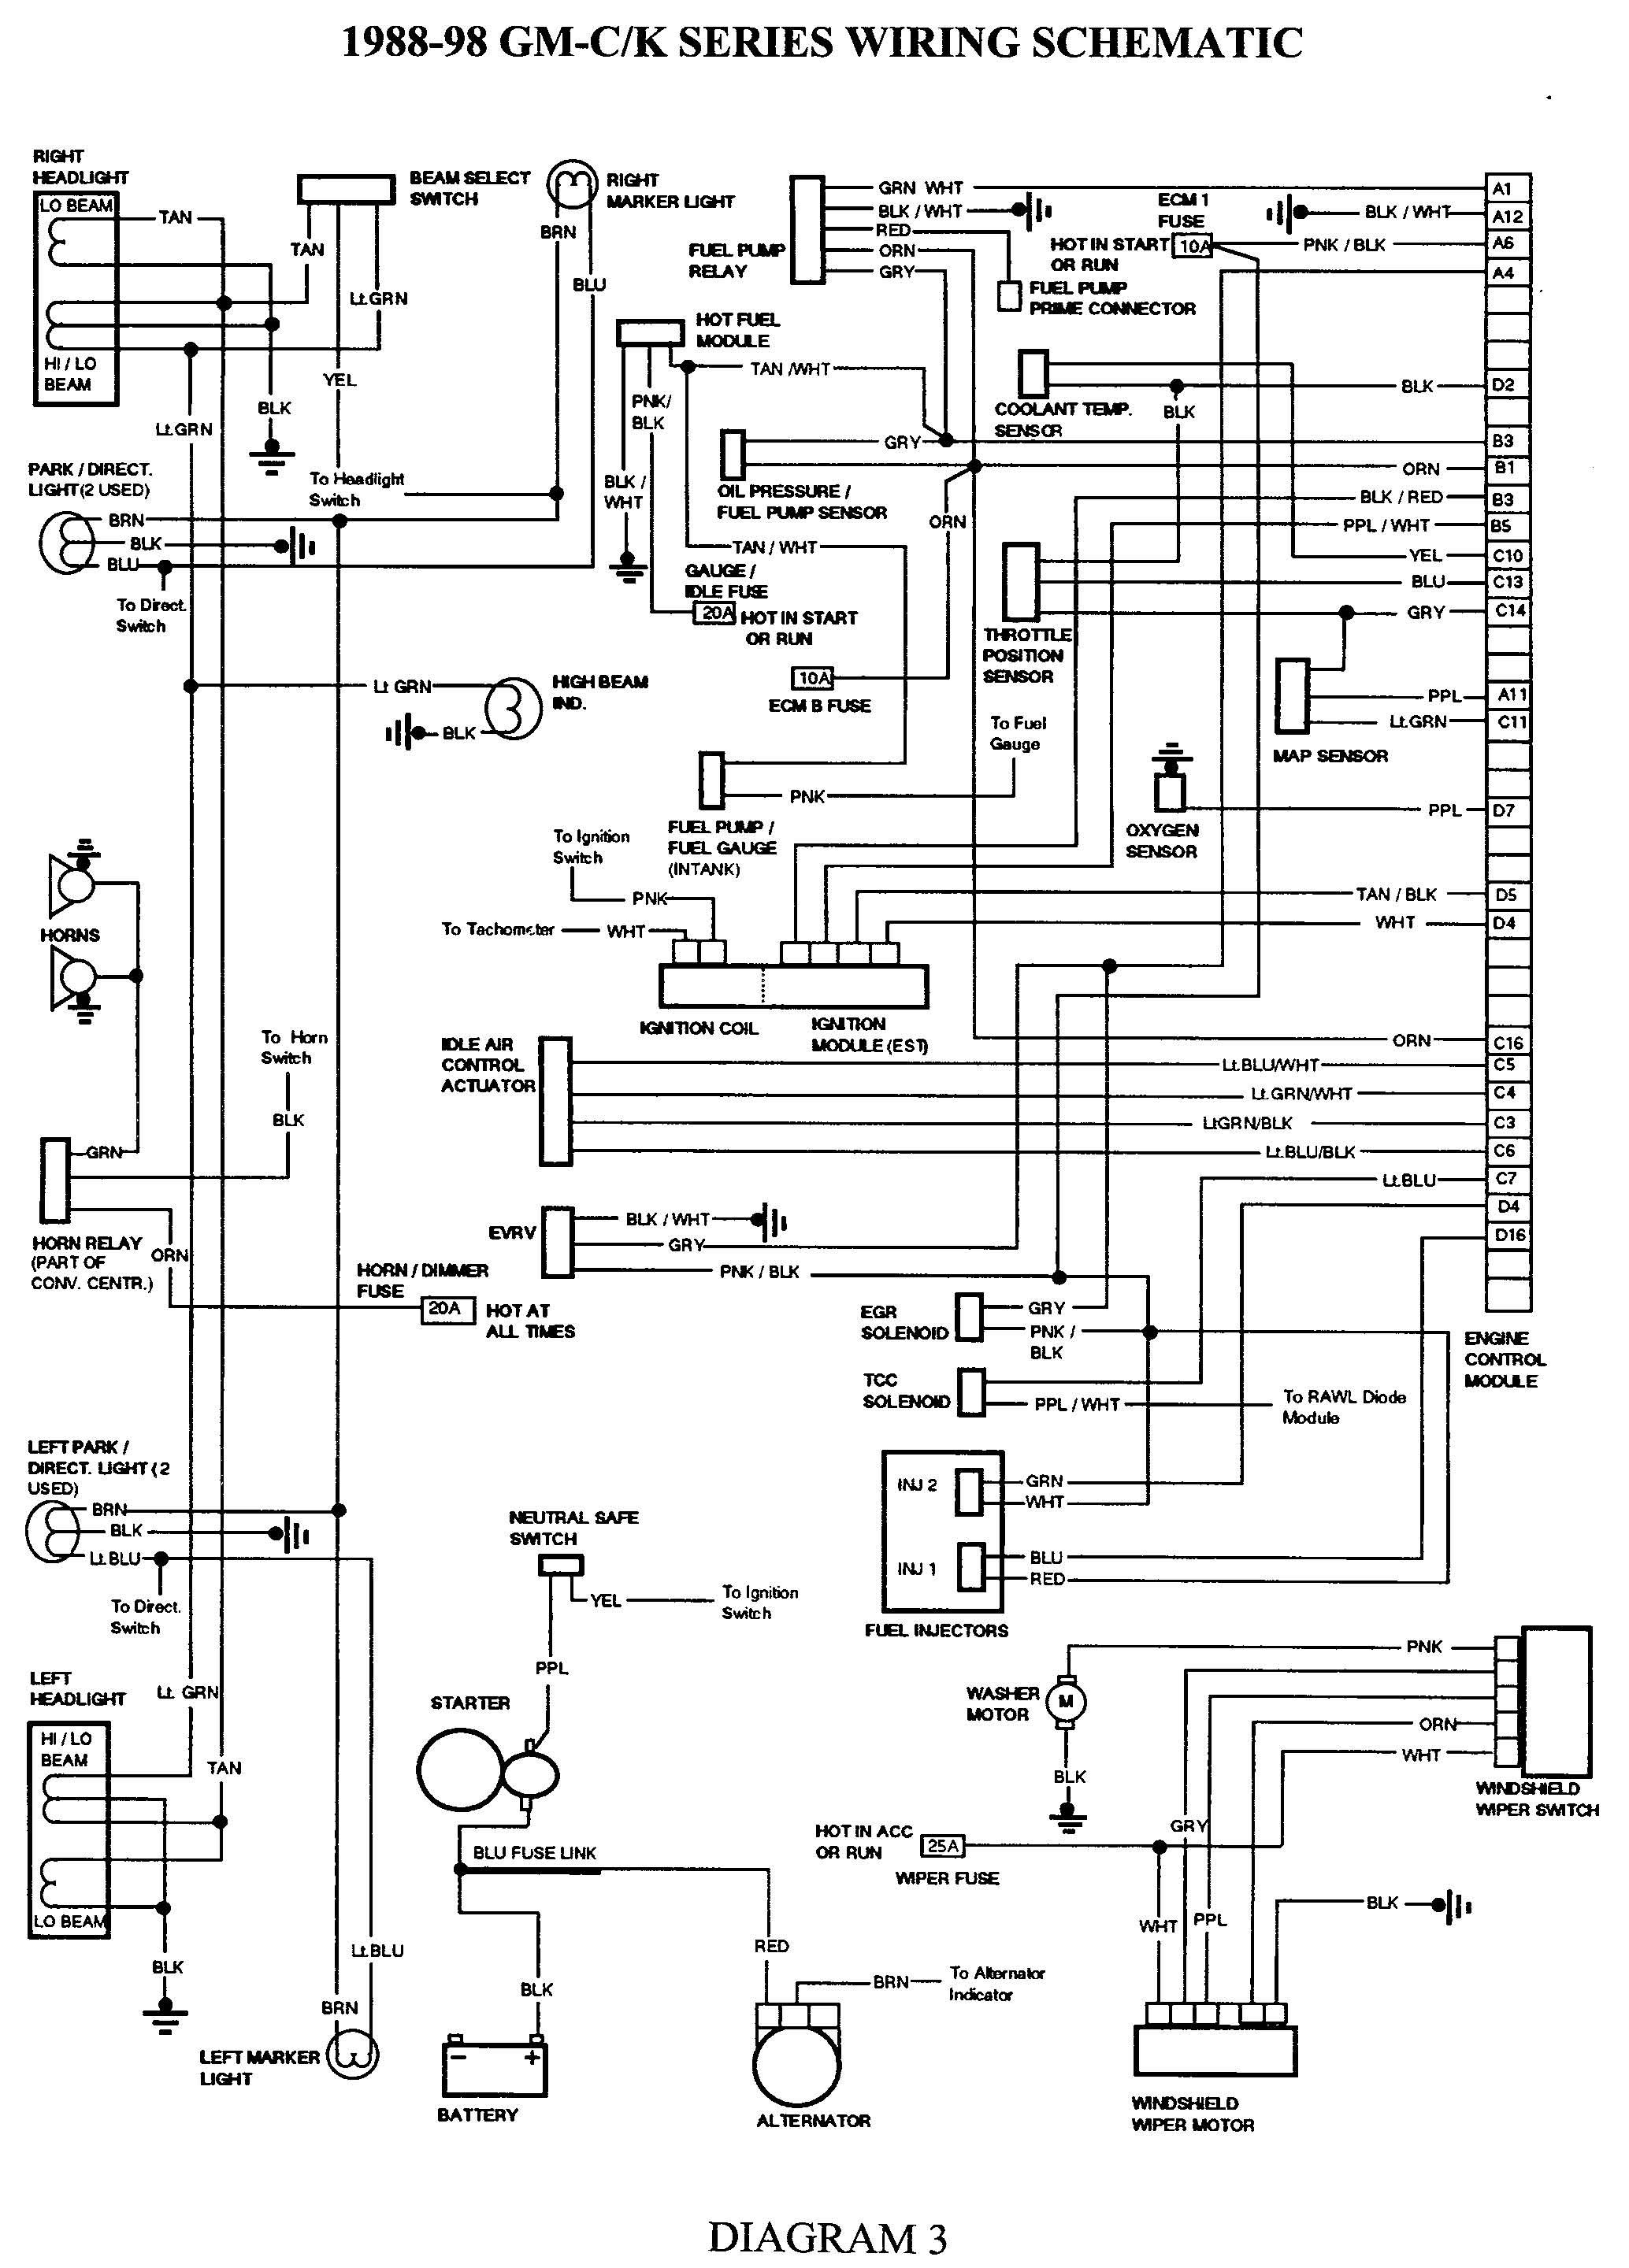 gmc truck wiring diagrams on gm wiring harness diagram 88 98 kc 2003 chevy silverado truck wiring diagram chevy silverado truck wiring diagram [ 2068 x 2880 Pixel ]